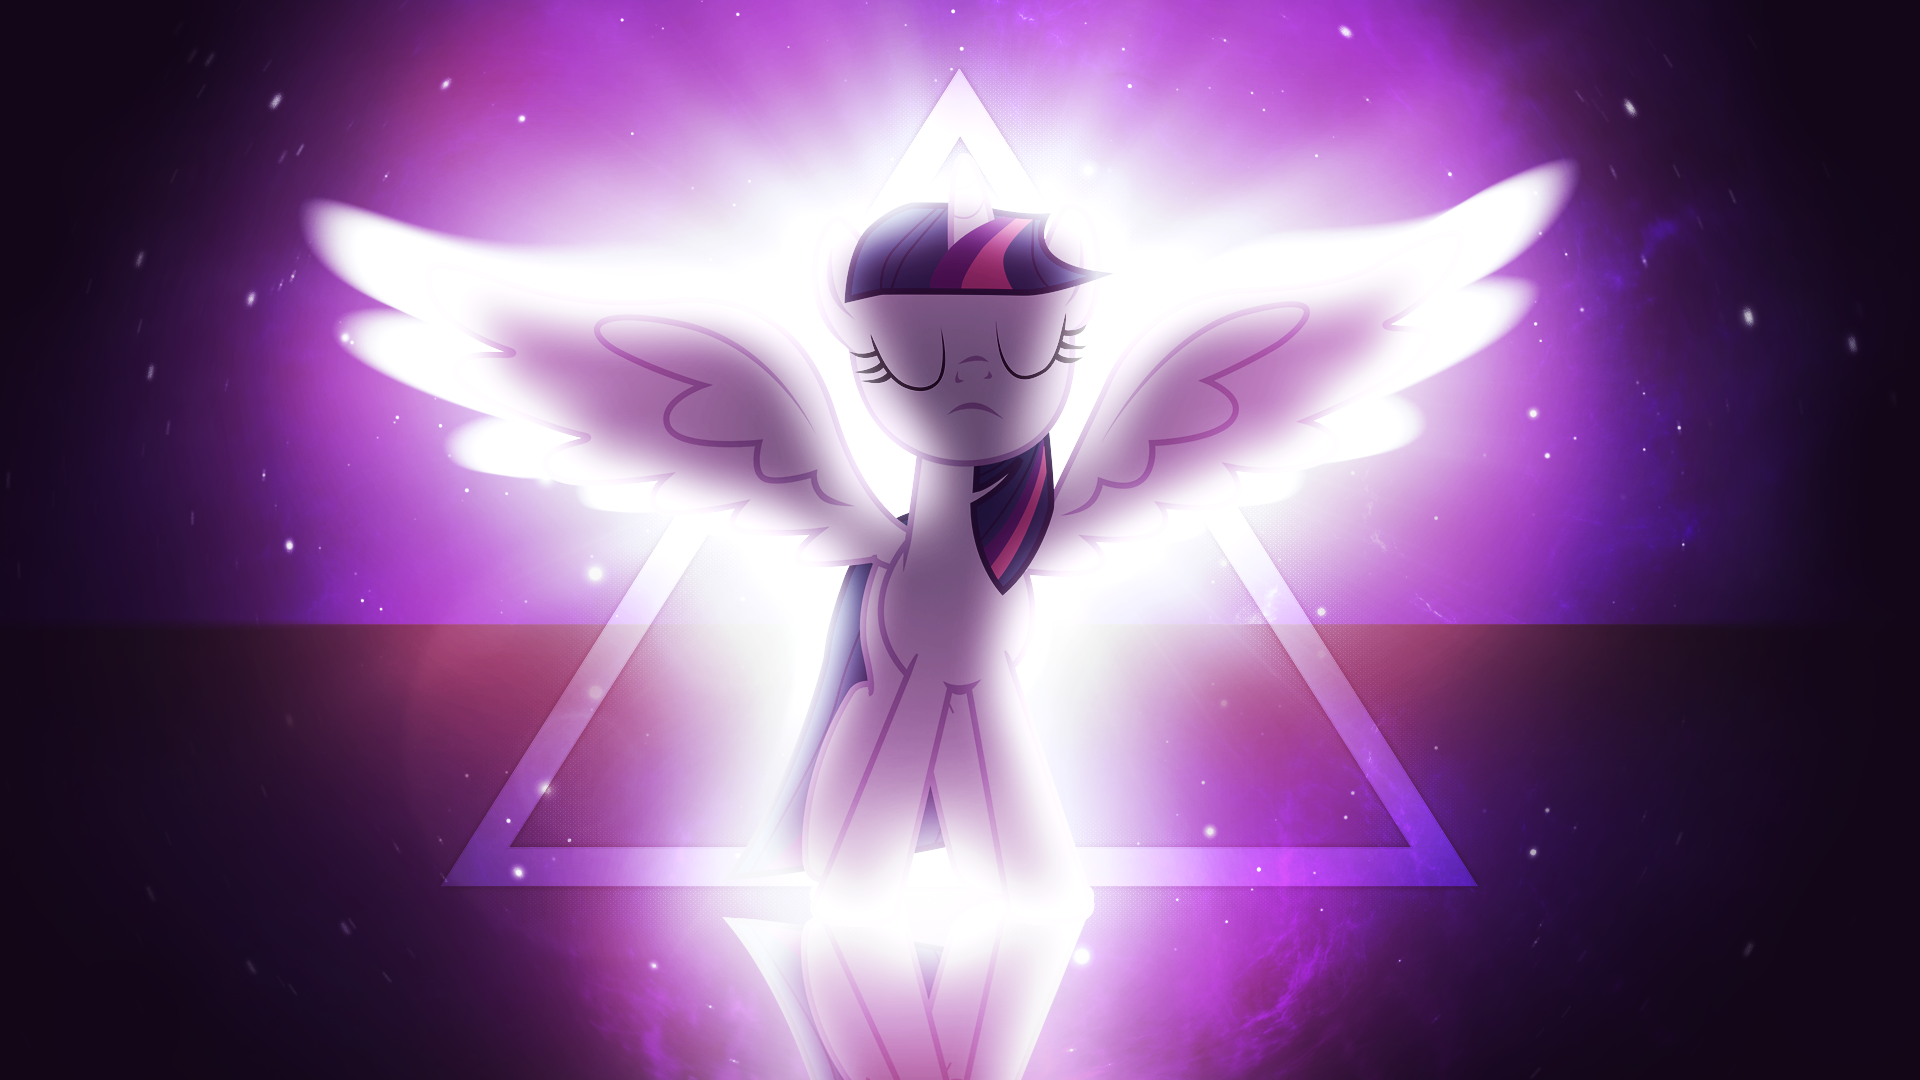 Free Download Image Alicorn Twilight Sparkle Wallpaper By Artist